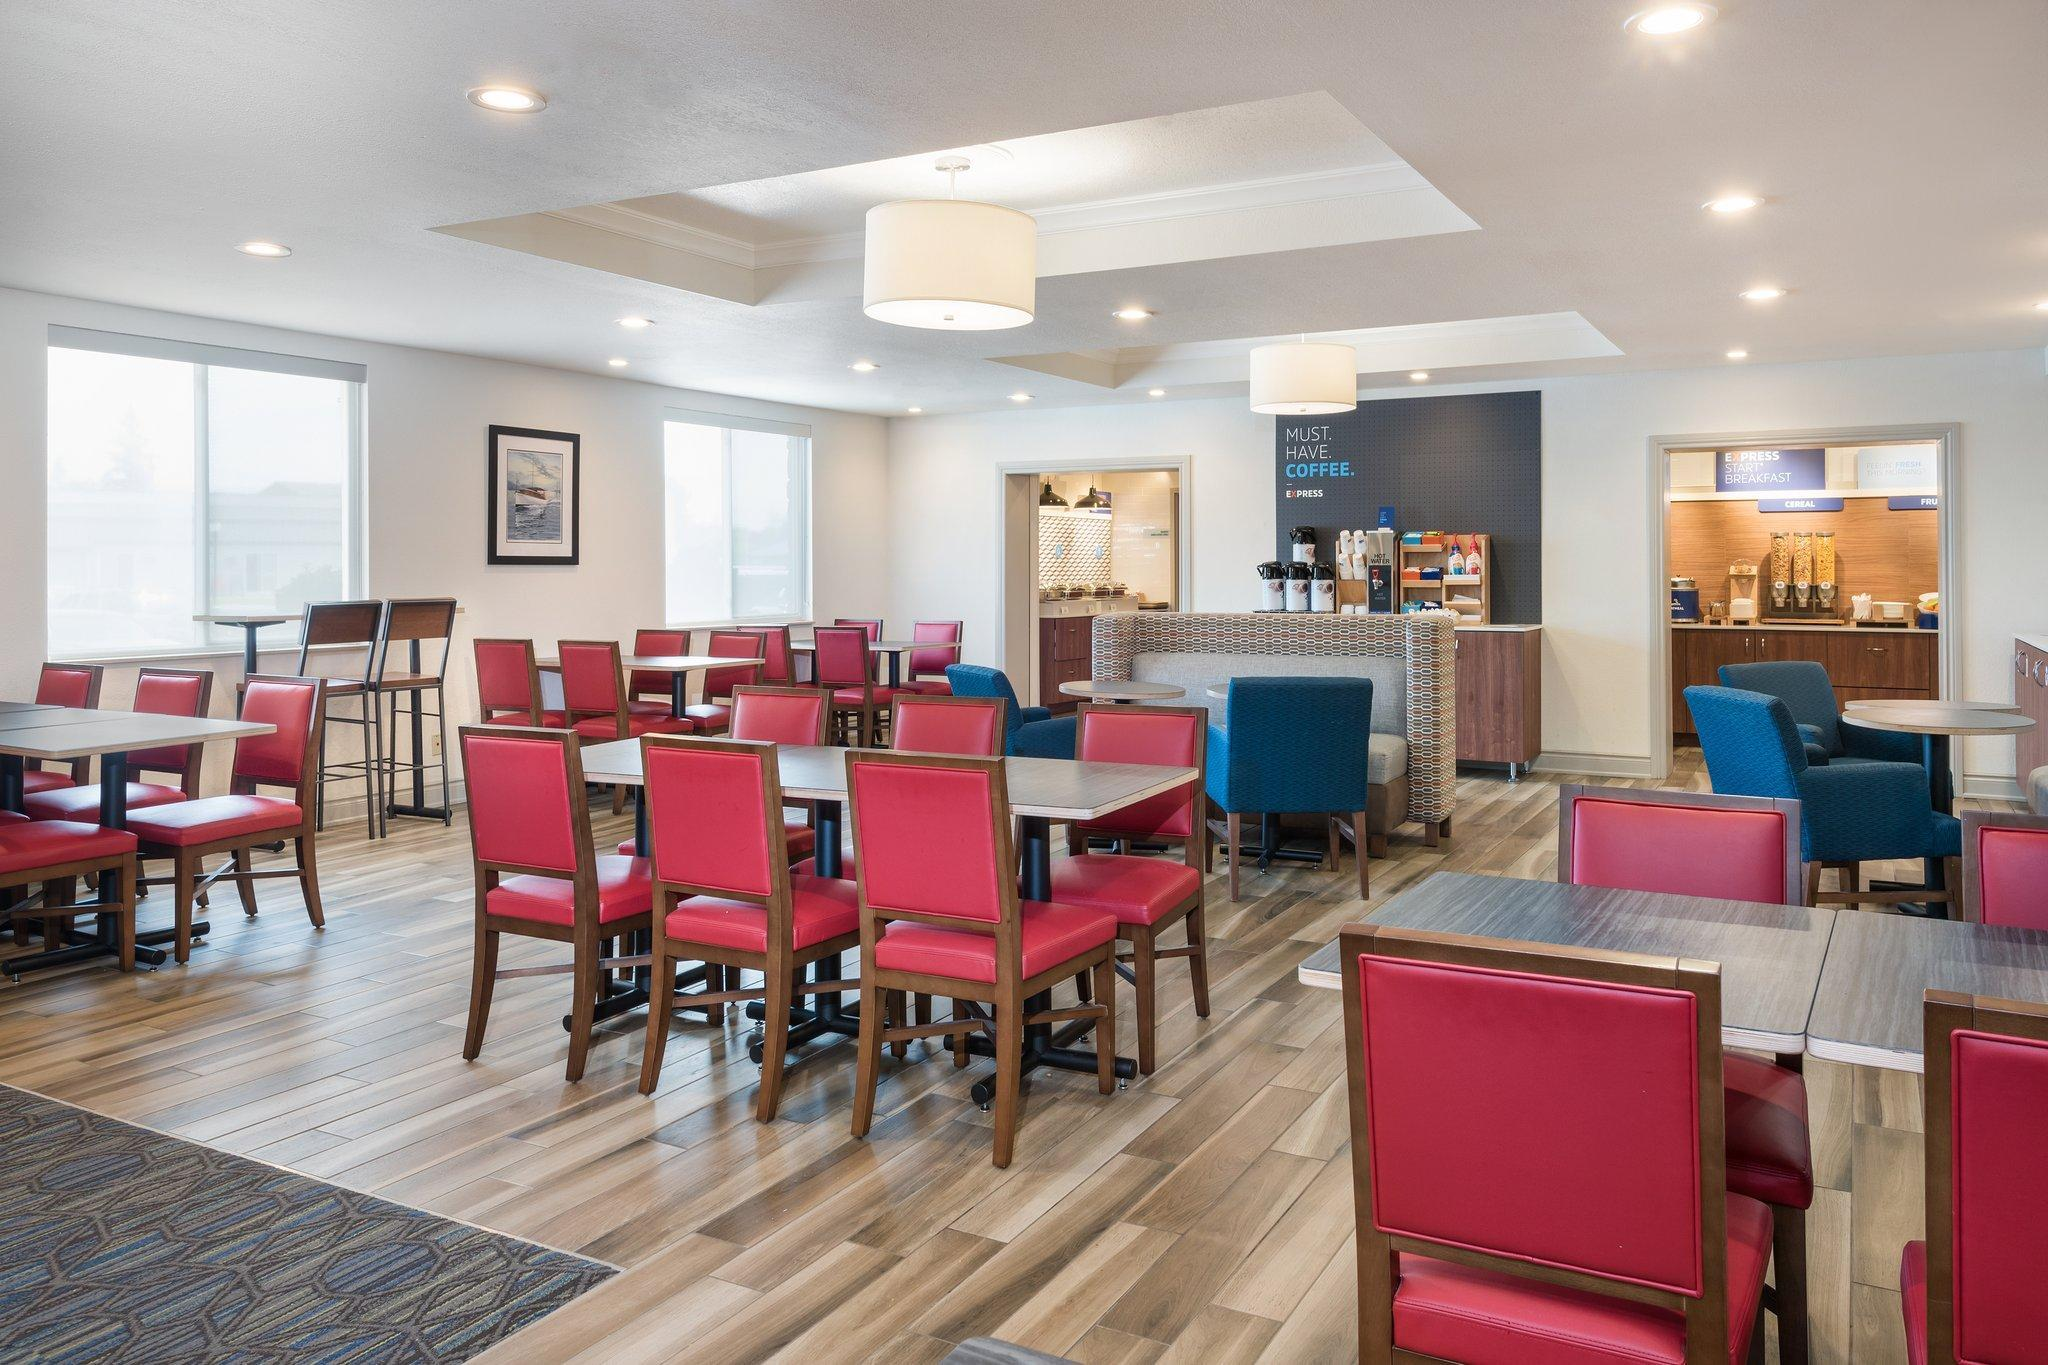 Holiday Inn Express Hotel & Suites 1000 Islands - Gananoque, Leeds and Grenville